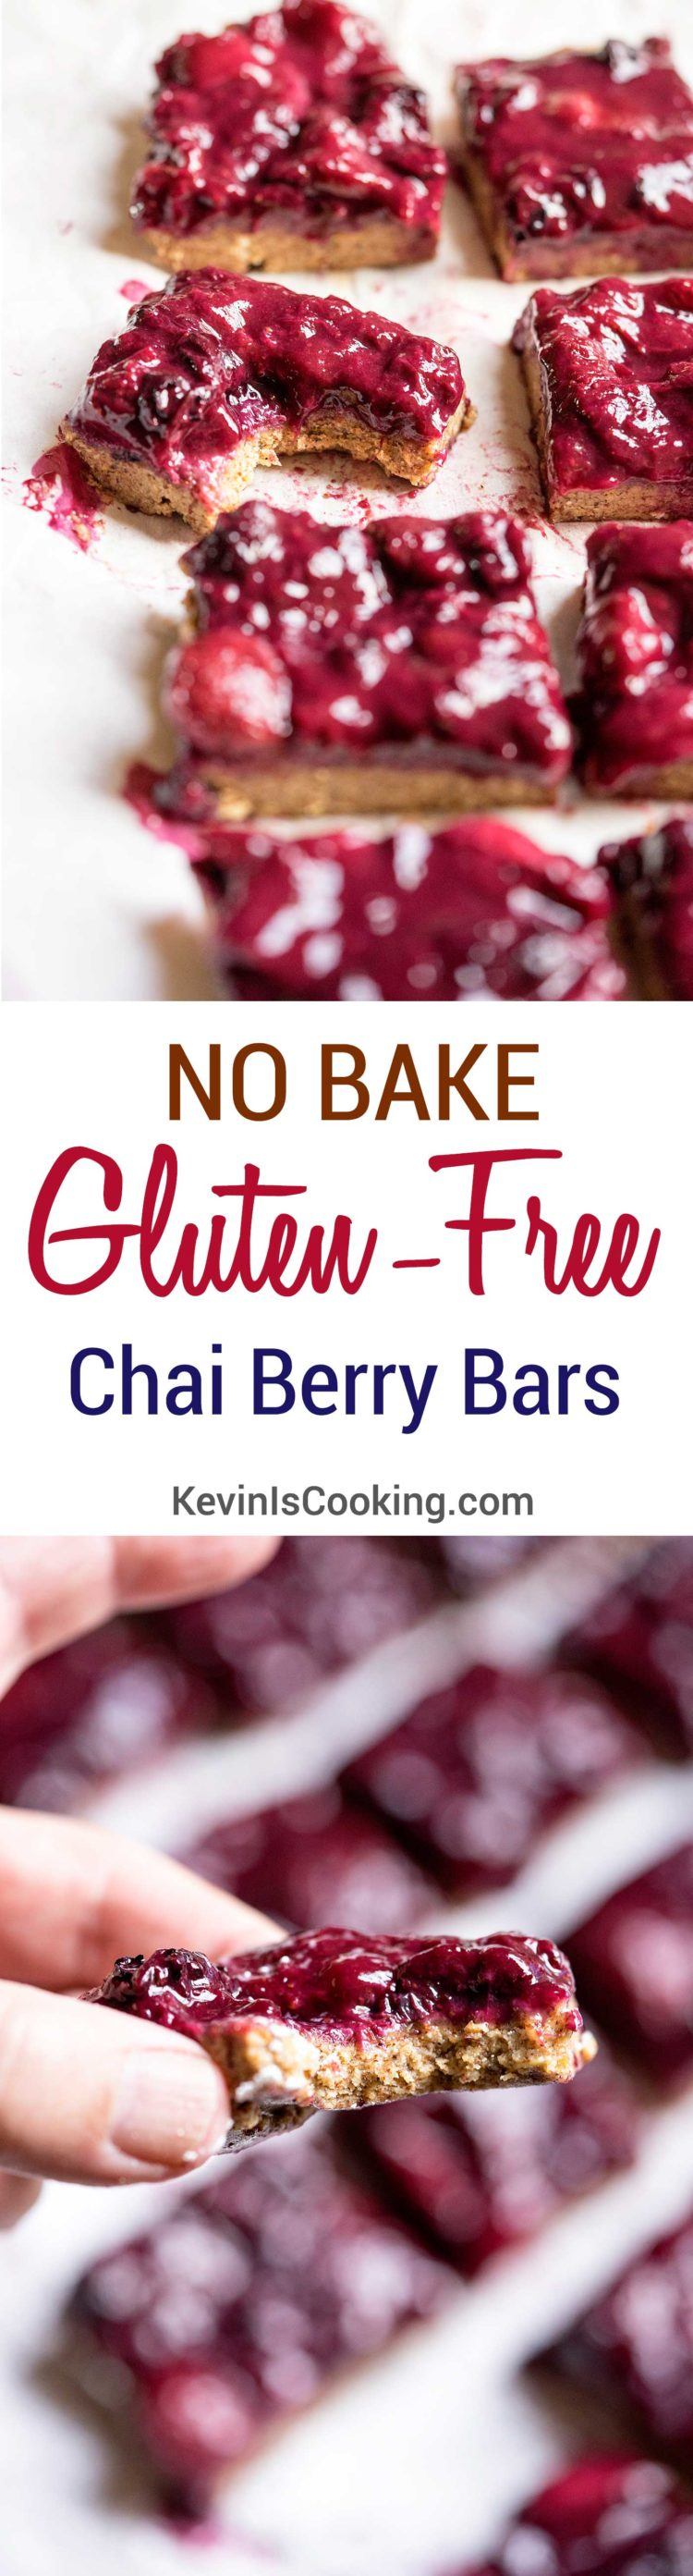 These easy to make No Bake Gluten Free Chai Berry Bars are made with healthy almonds and oats and kissed with a chai spice to accent Spring's fresh berries.